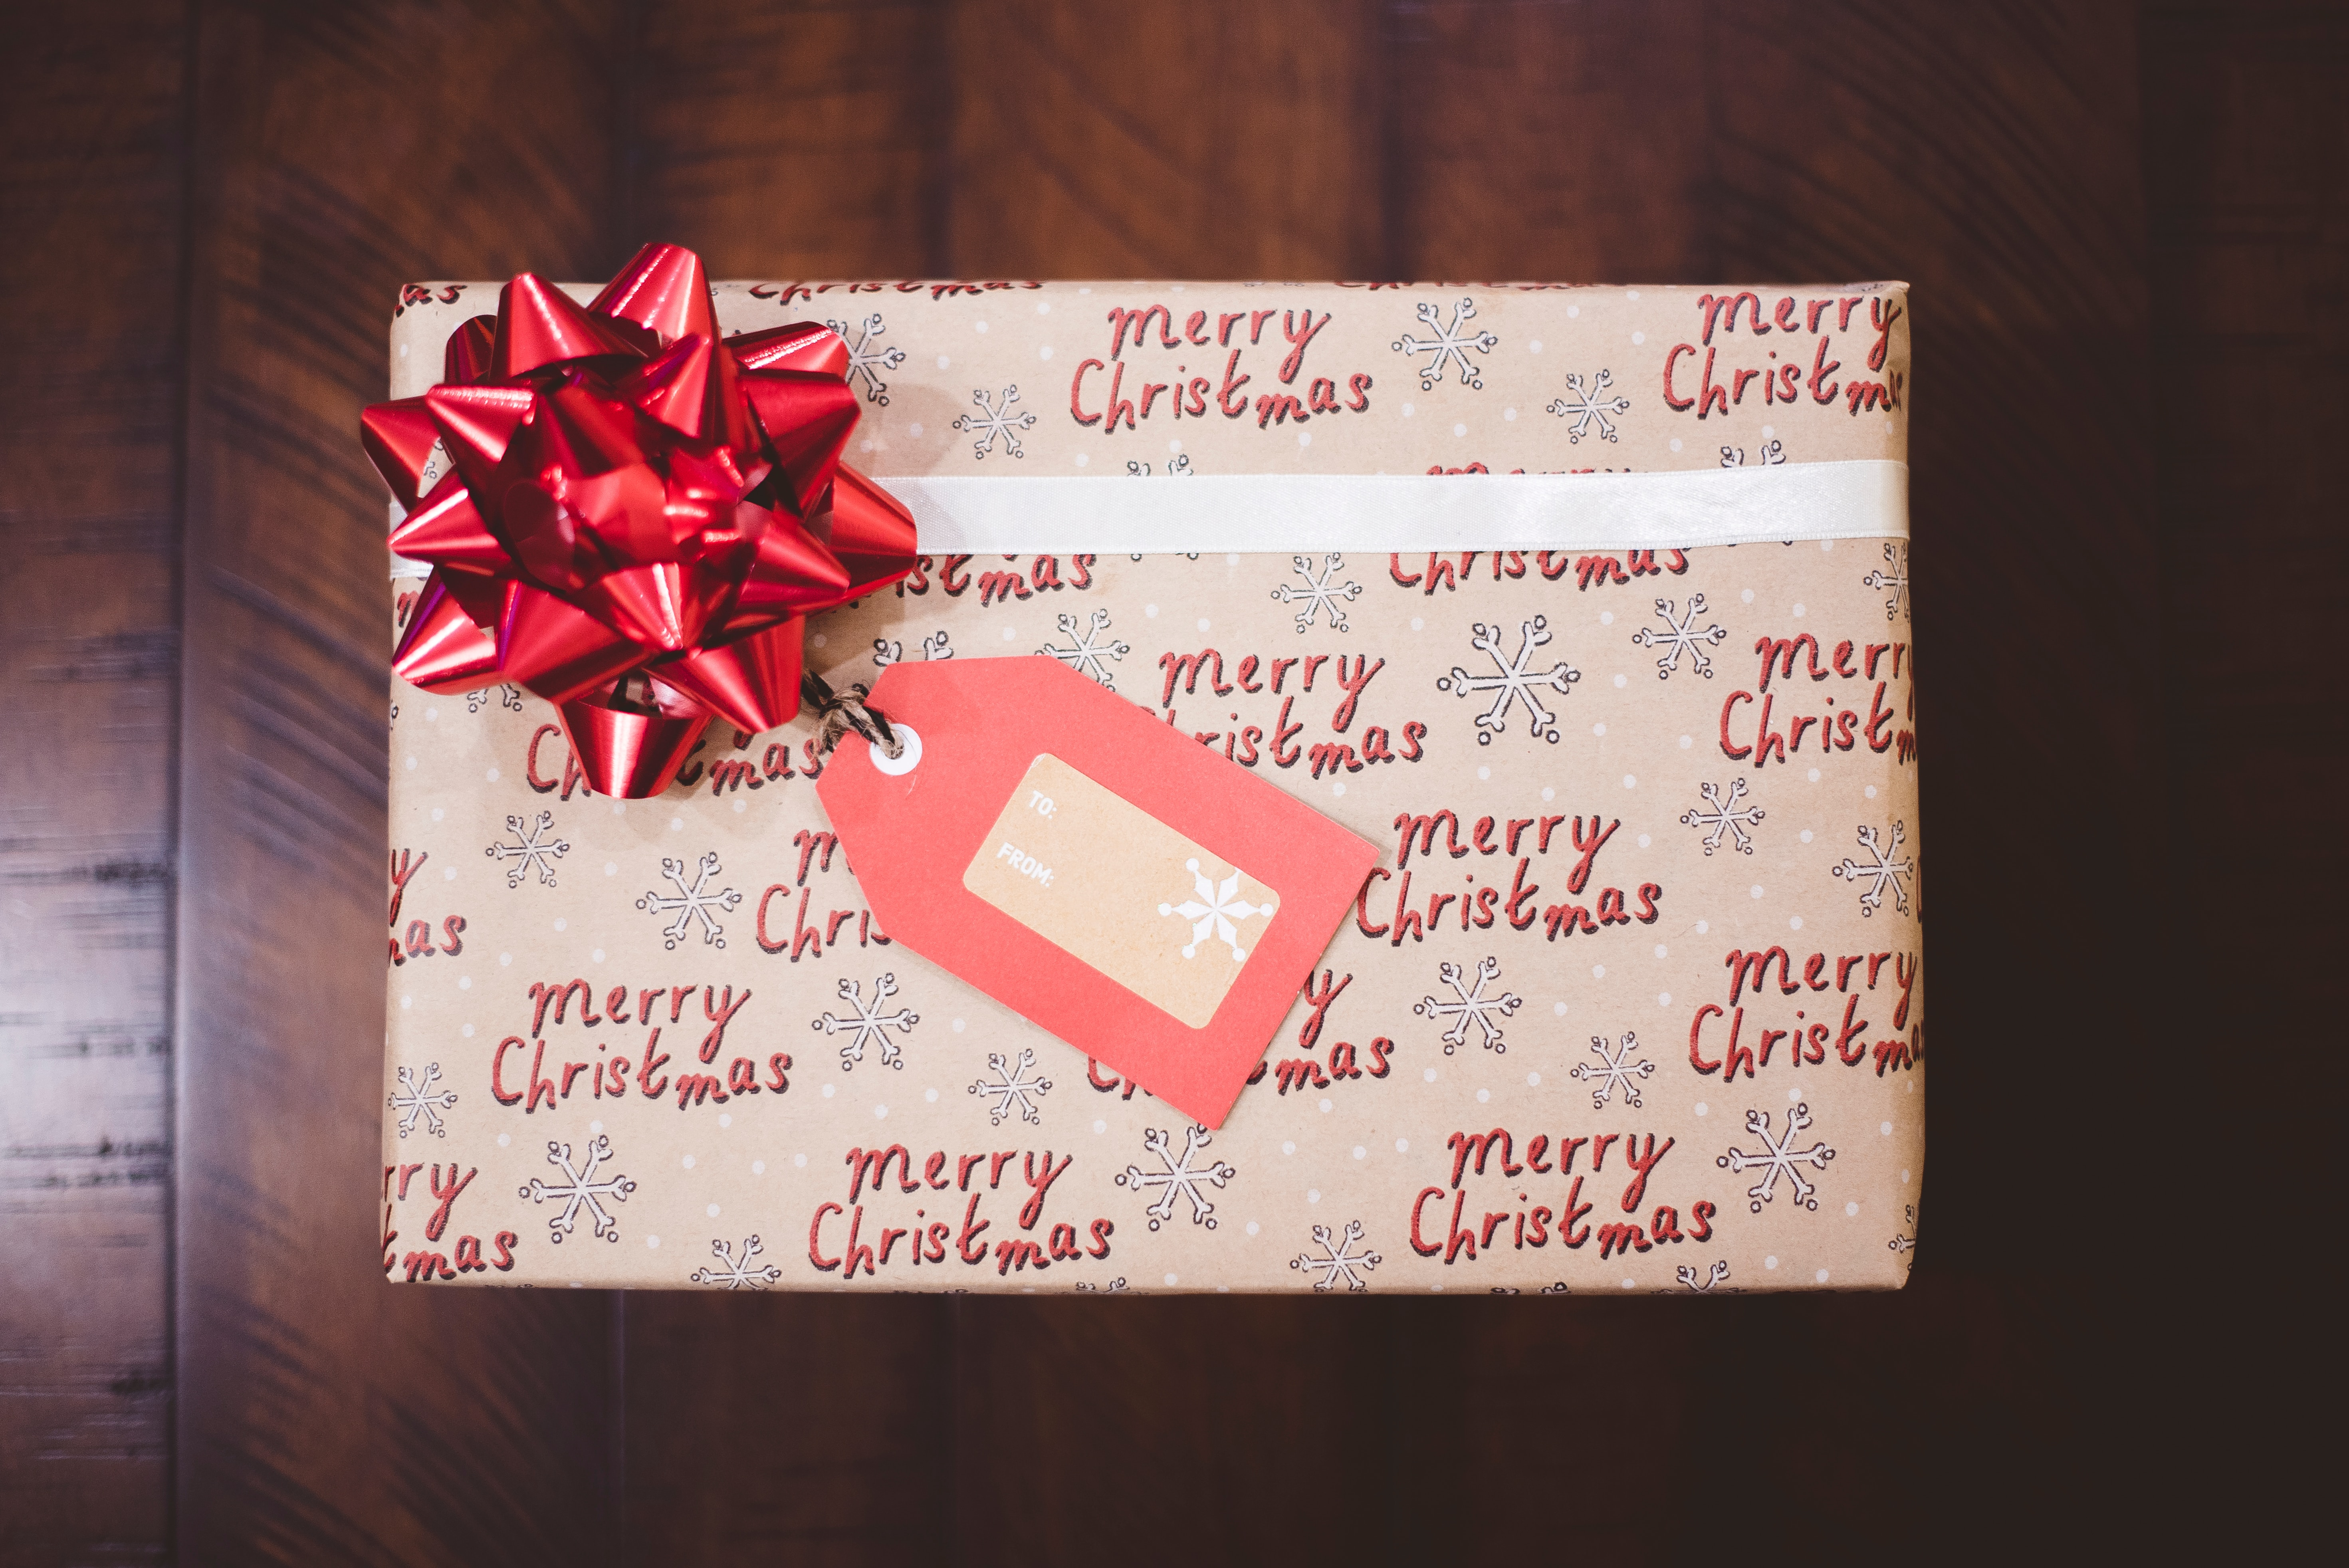 Image shows a rectangluar present with Merry Christmas printed across the wrapping paper. It has a red bow on the top left hand corner.